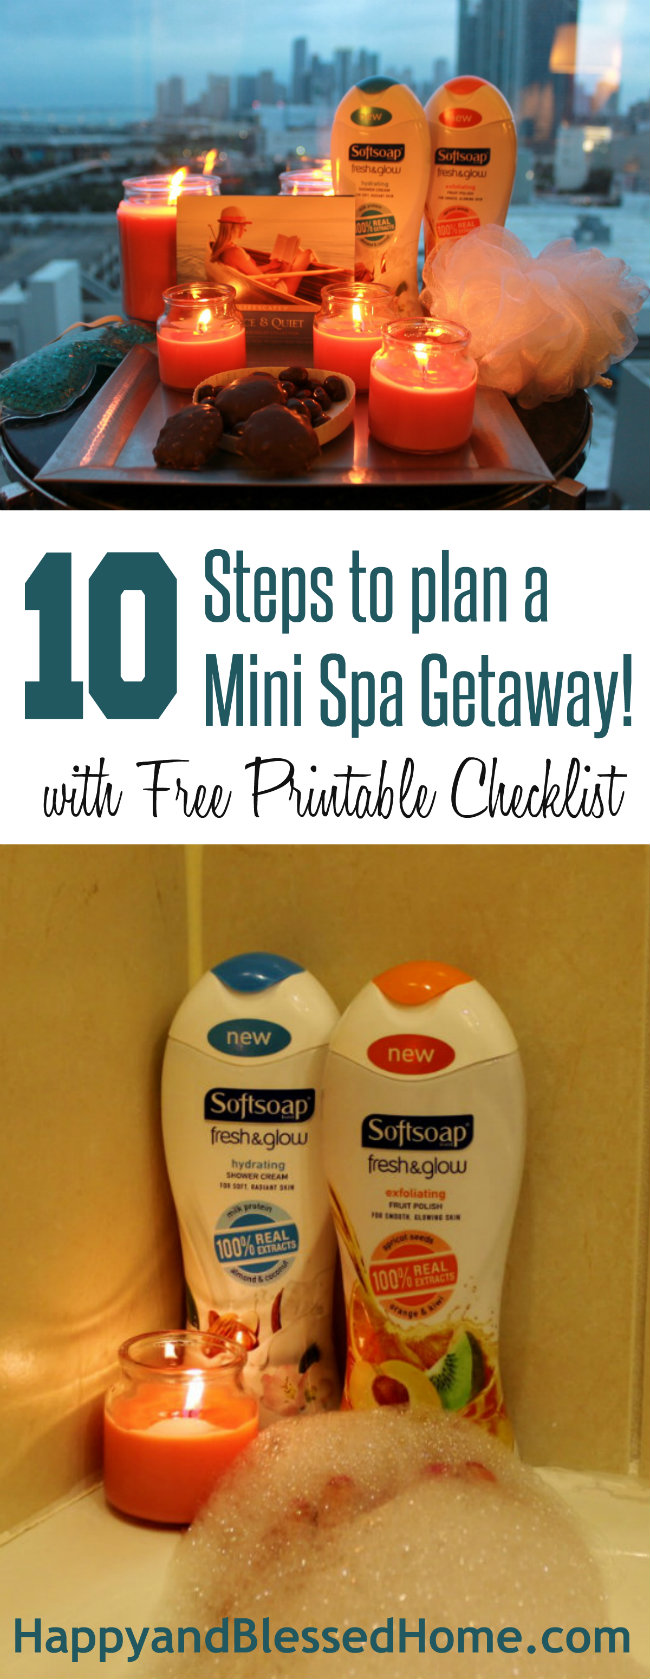 10 Steps to Plan a Mini Spa Getaway with FREE Printable Checklist from HappyandBlessedHome.com